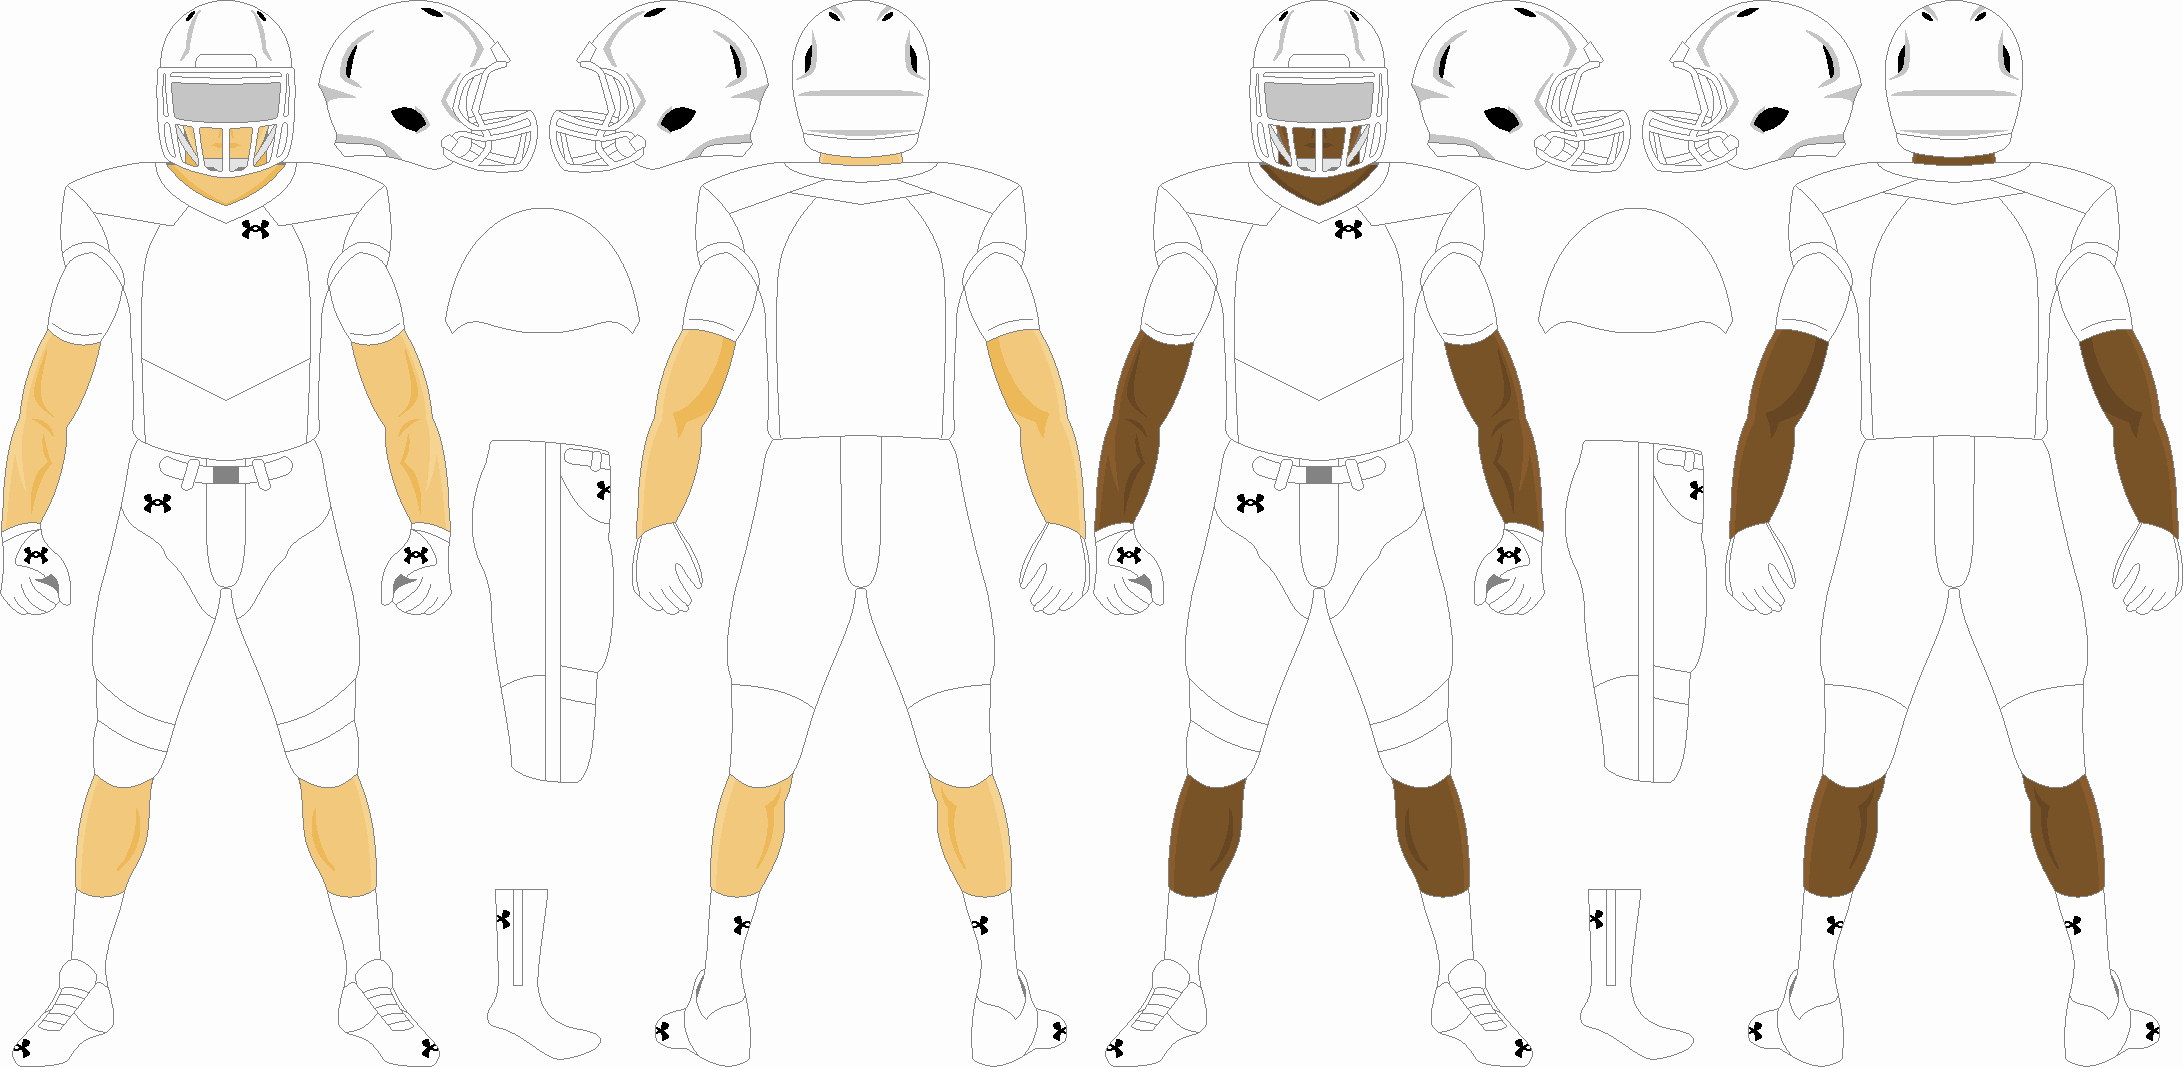 Nike Football Uniform Template Best Of Paint Users Paradise 2 0 Page 26 Concepts Chris